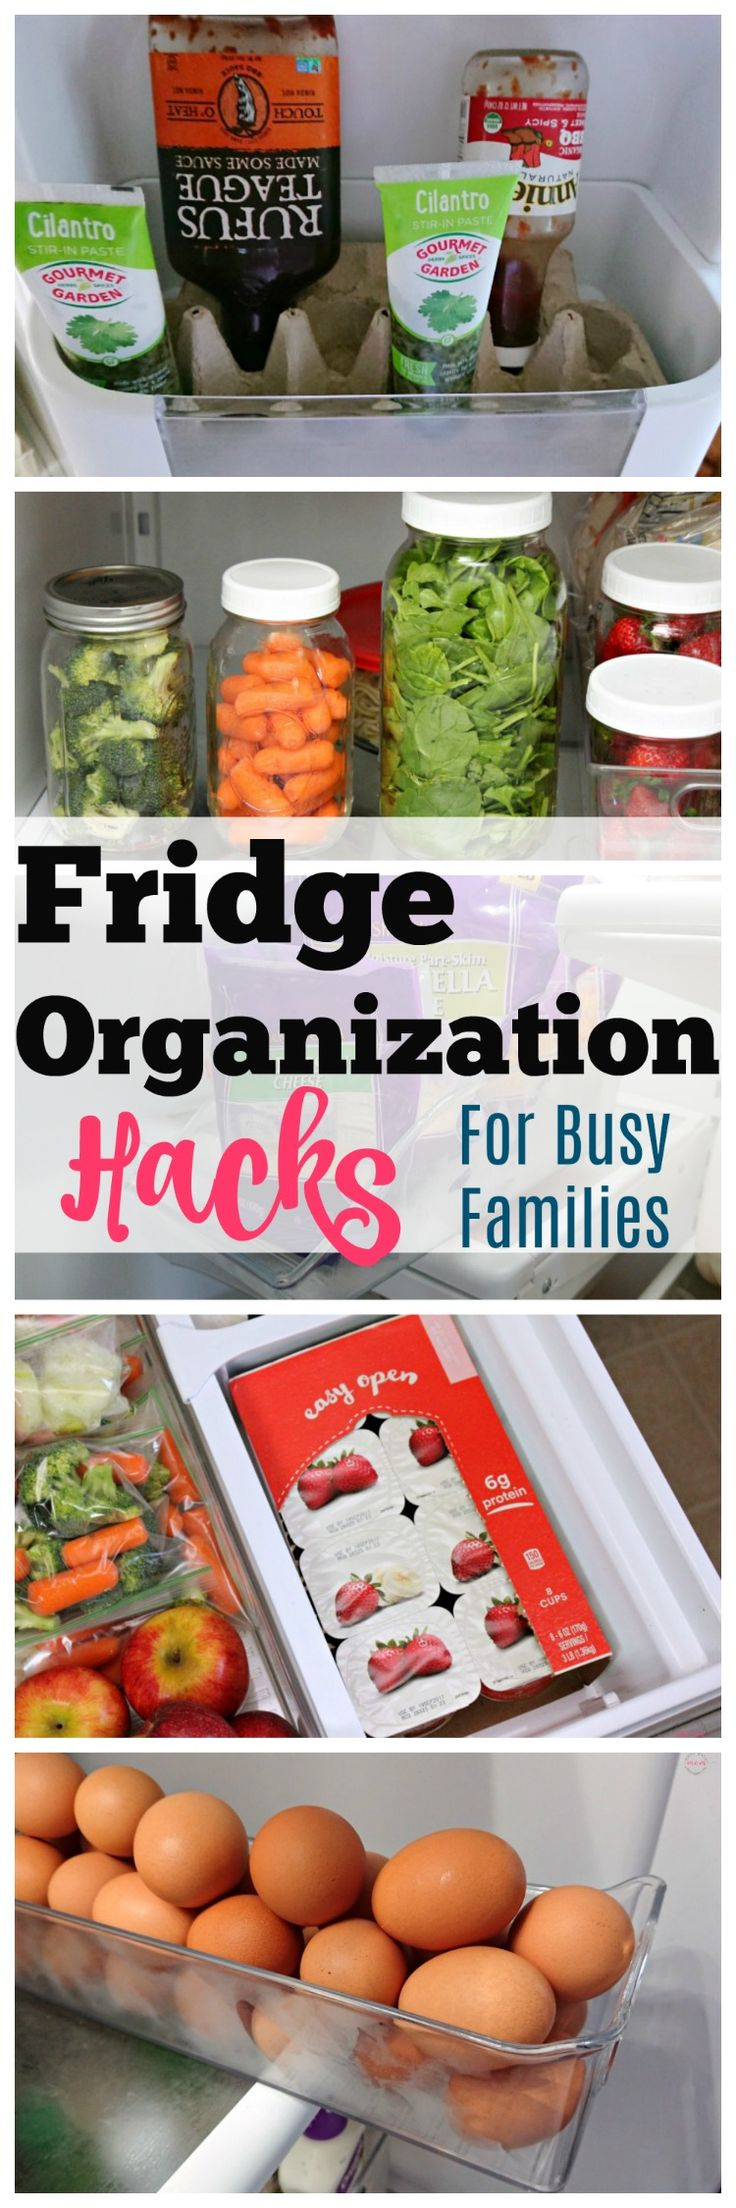 Easy fridge makeover tips! Fridge organization for busy families. Fridge hacks you need to know.